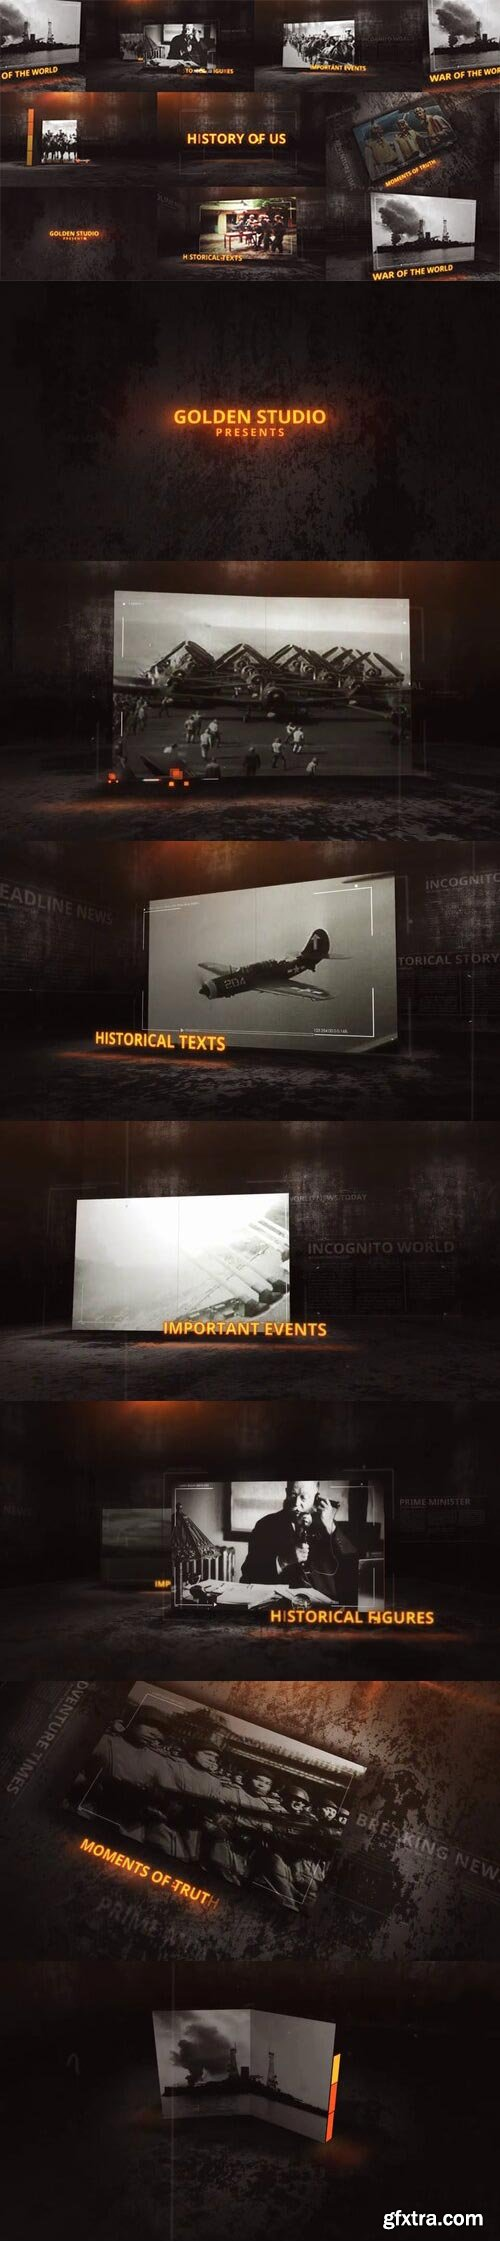 Videohive - Glitches History Of Us - 26740127